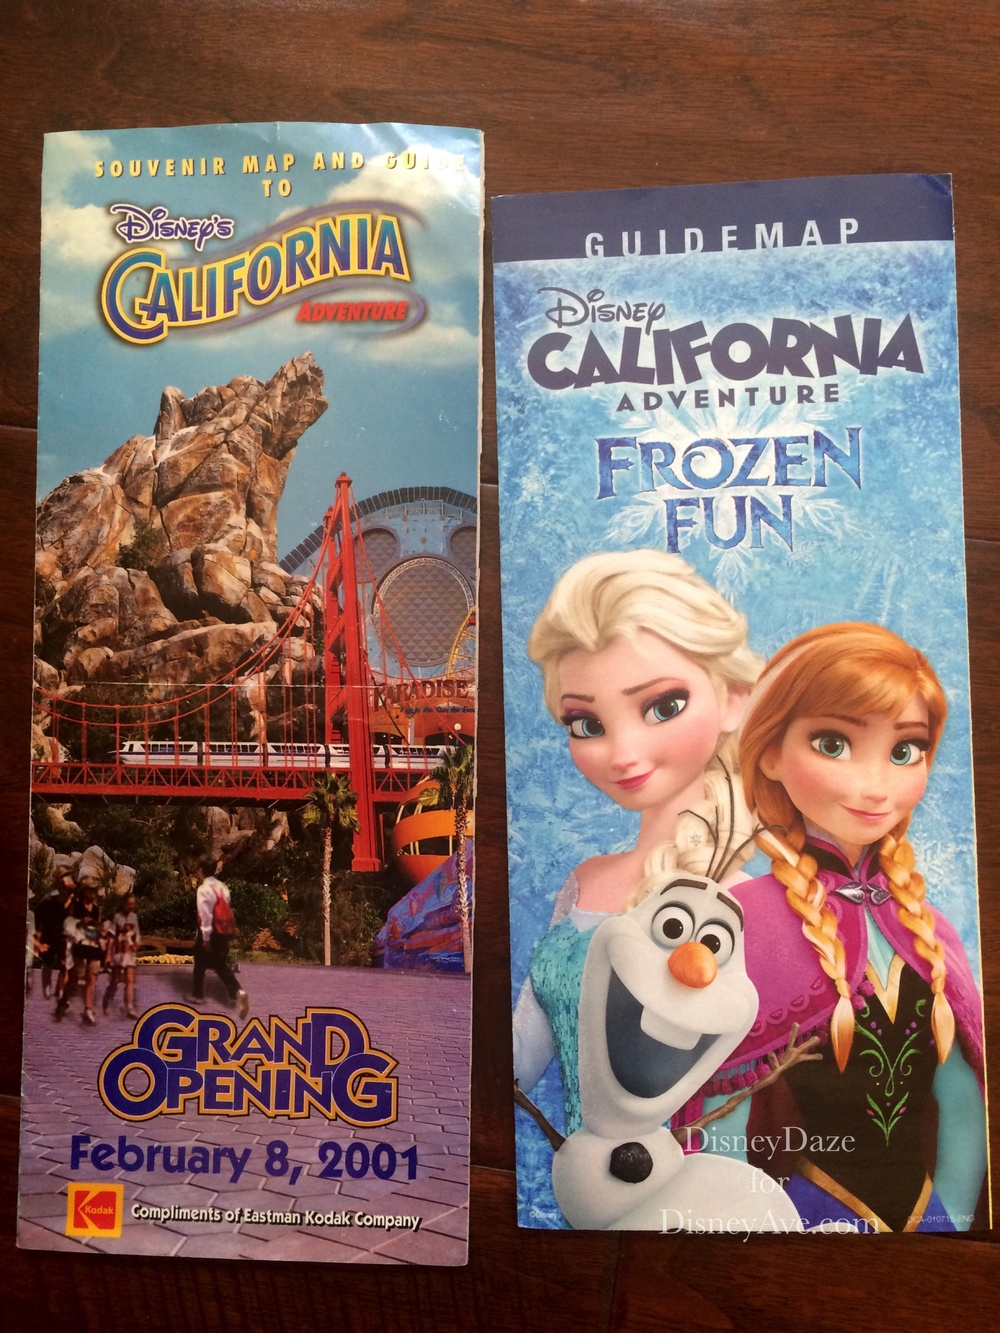 Grand Opening DCA Map Feb 8, 2001 and Current DCA Map Feb 8, 2015